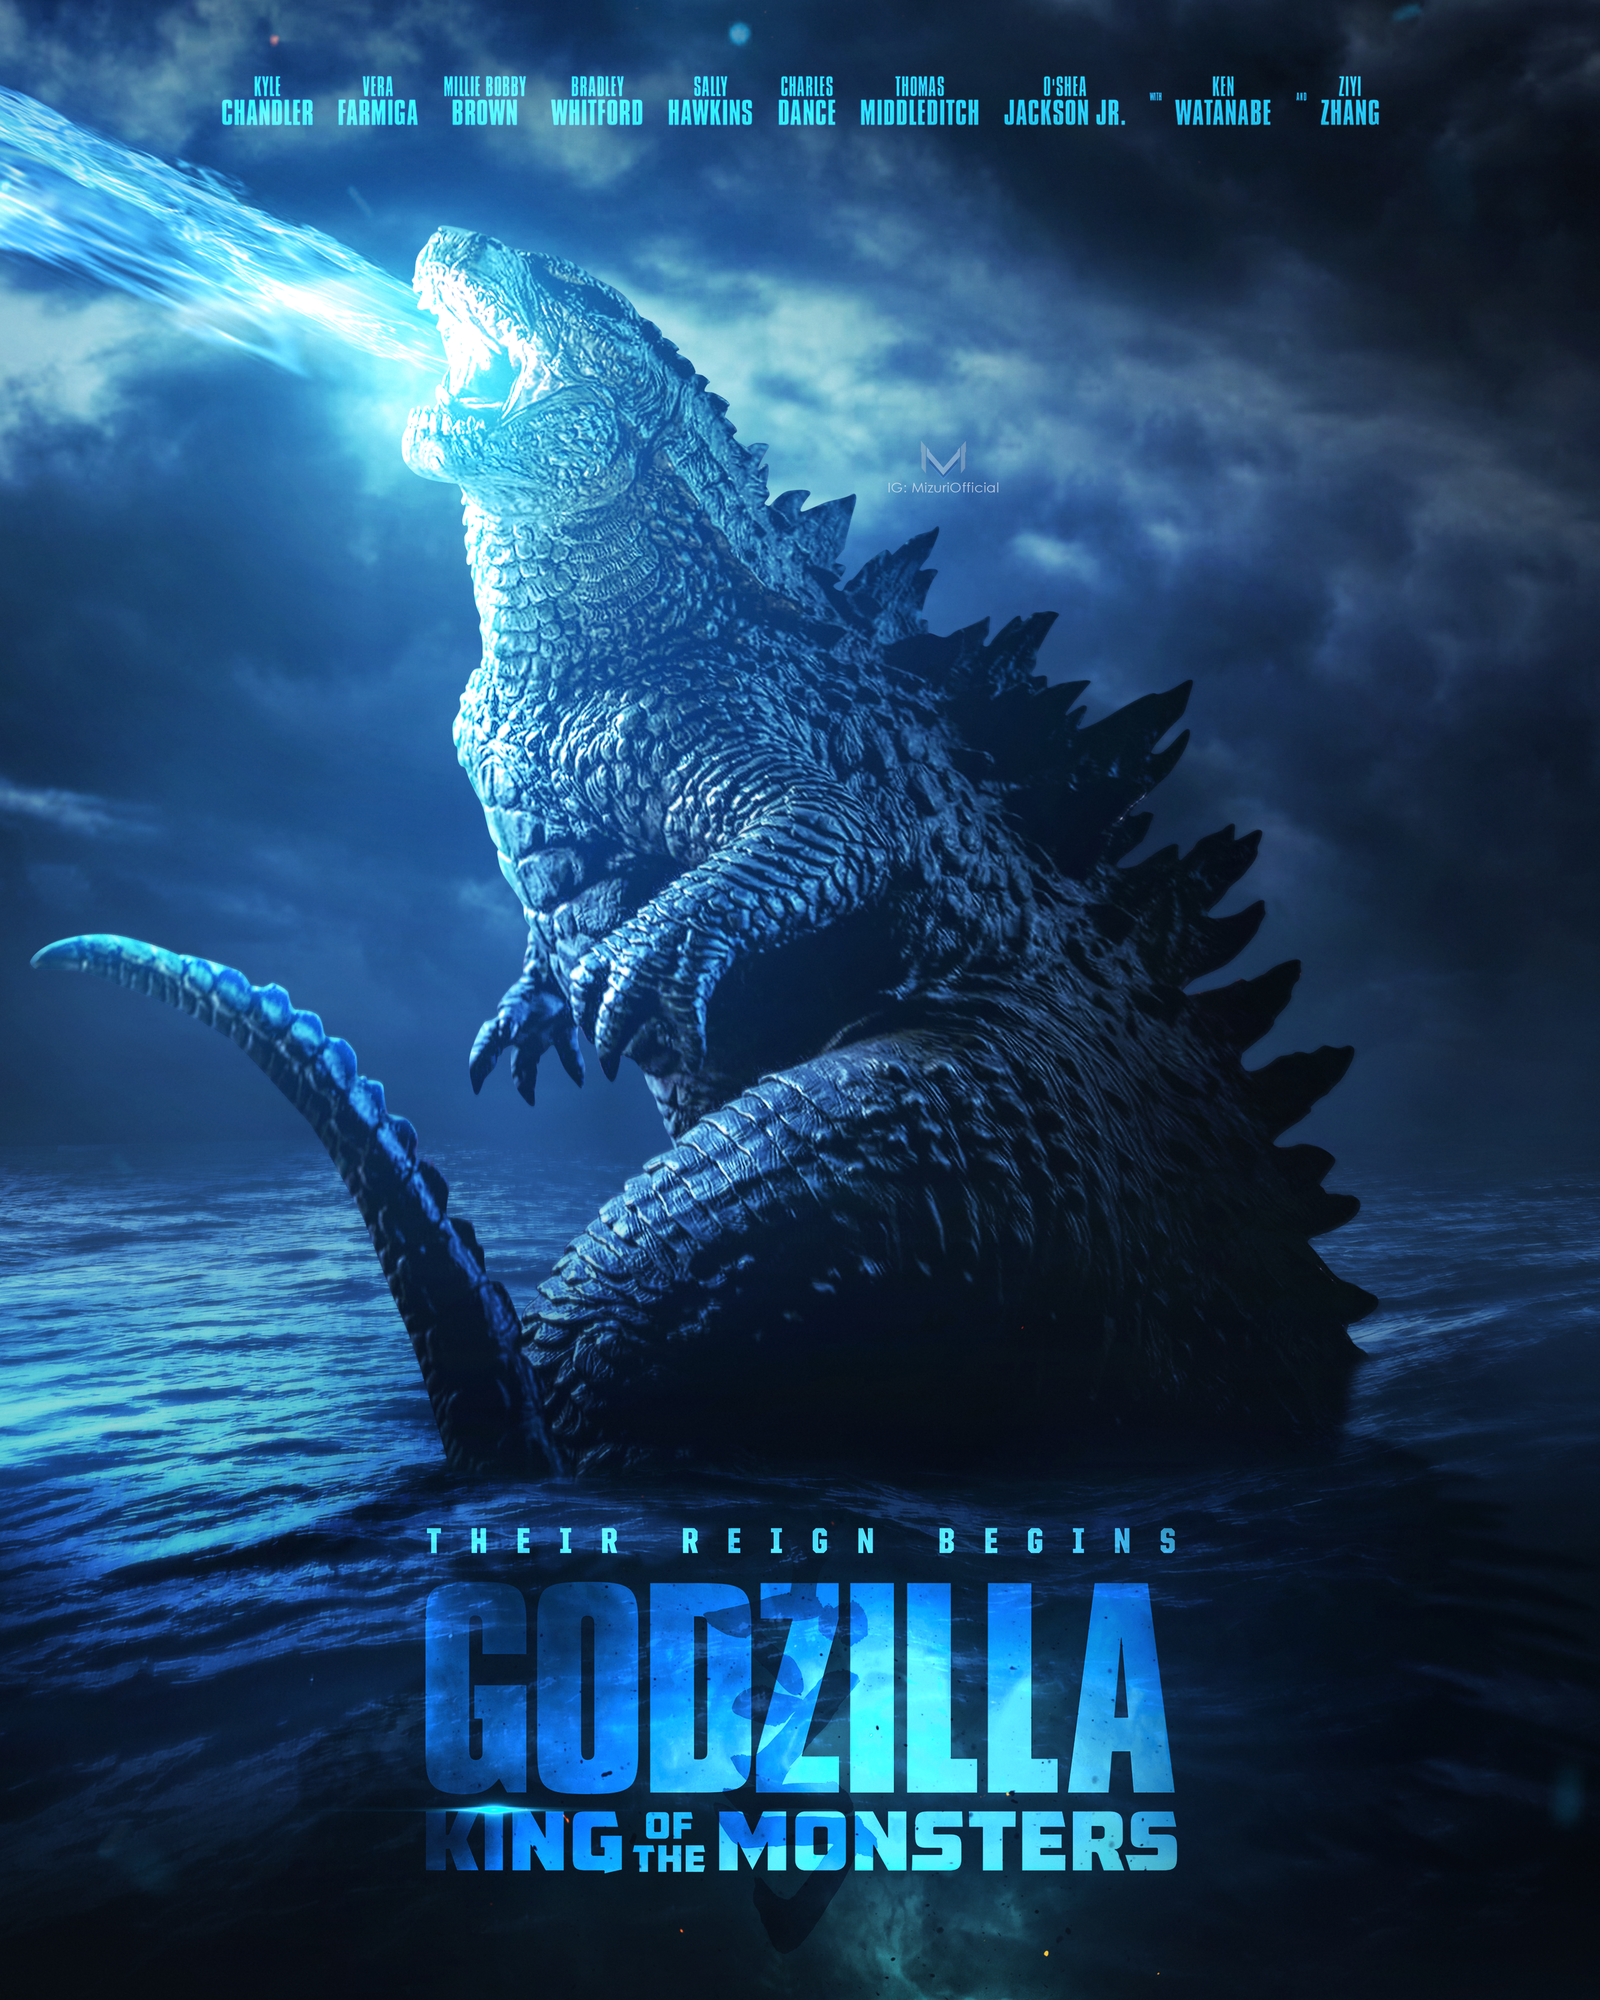 Godzilla - King of the Monsters - by Kathia WoodsSummer movie season doesn't seem official without a movie entrance that has lots of special effects and a monster, Godzilla is that movie. The conflict is between Monarch a crypto-zoological agency that fights monsters and the revived dormant monsters. I know that seems contradictory but that is the scenario. Godzilla is apparently on the human's side, but his nemeses King Ghidorah, aka the three-headed monster is not. In plain English, they are fighting over supremacy.Sprinkled in there are Dr. Emma Russell, Dr. Mark Russell and their daughter Madison. The Russell's are still grieving the loss of their son at the hands of Godzilla. This grieving results in Dr. Emma Russell, making some bad choices. Vera Farmiga portrays Dr. Emma Russell. She's usually formidable, but in this movie, she's just flat. I could not muster any empathy for her character. Millie Bobby Brown is Madison Russell and let's say this part was not an evolution from her Stranger Things character eleven. Kyle Chandler is the most likable out of the Russell bunch as Dr. Mark Russell, but even he couldn't salvage this.You may be asking how that plays into the monster storyline? It doesn't.That's the problem with Godzilla; it's preposterous even by action movie standards. We don't care about this family and its issues. The beginning of this movie is slow and drags. I found myself almost falling asleep, which seems hard amongst all the noise. The plot is nonexistent. They attempt at various stages to pull us in with the scientific mambo jumbo, but it just doesn't work.At one point we are inundated with so many monsters that it's just overkill. Also, the special effects weren't the greatest. Some of the CGI is quite comical.One aspect of this movie I did enjoy is the diversity in its cast. There's been much discussion on how best to apply diversity in a film. Godzilla does. O'Shea Jackson Jr, Ken Watanabe, Zhang Ziyi, Aisha Hands, Anthony Ramos, and Elizabeth Ludlow all have roles with purpose.I didn't expect Godzilla to be Jurassic Park; however, the biggest sin is that it's boring. An unutilized stellar cast, overkill special effects and to many monsters makes for quite a snooze. If they do decide to make another movie in this series, I urge them to keep it simple. In the end, less is more.Scale: This movie gets a five. An action movie that was dull.Diversity: This movie gets an 8 for having a diverse cast from starring roles to supportive roles.